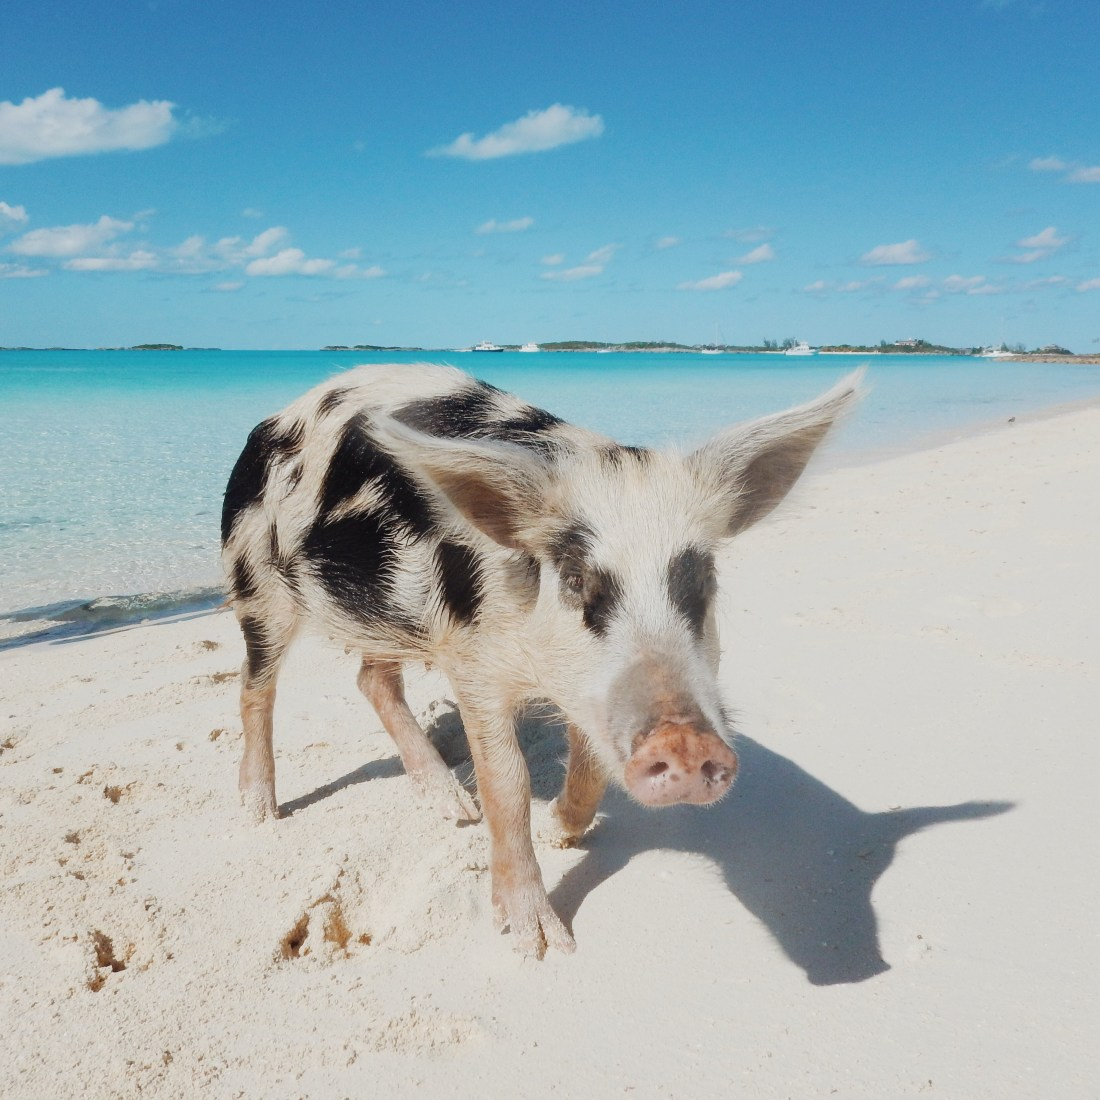 Traveling To The Exumas, Bahamas (& Why It's Our Favorite)